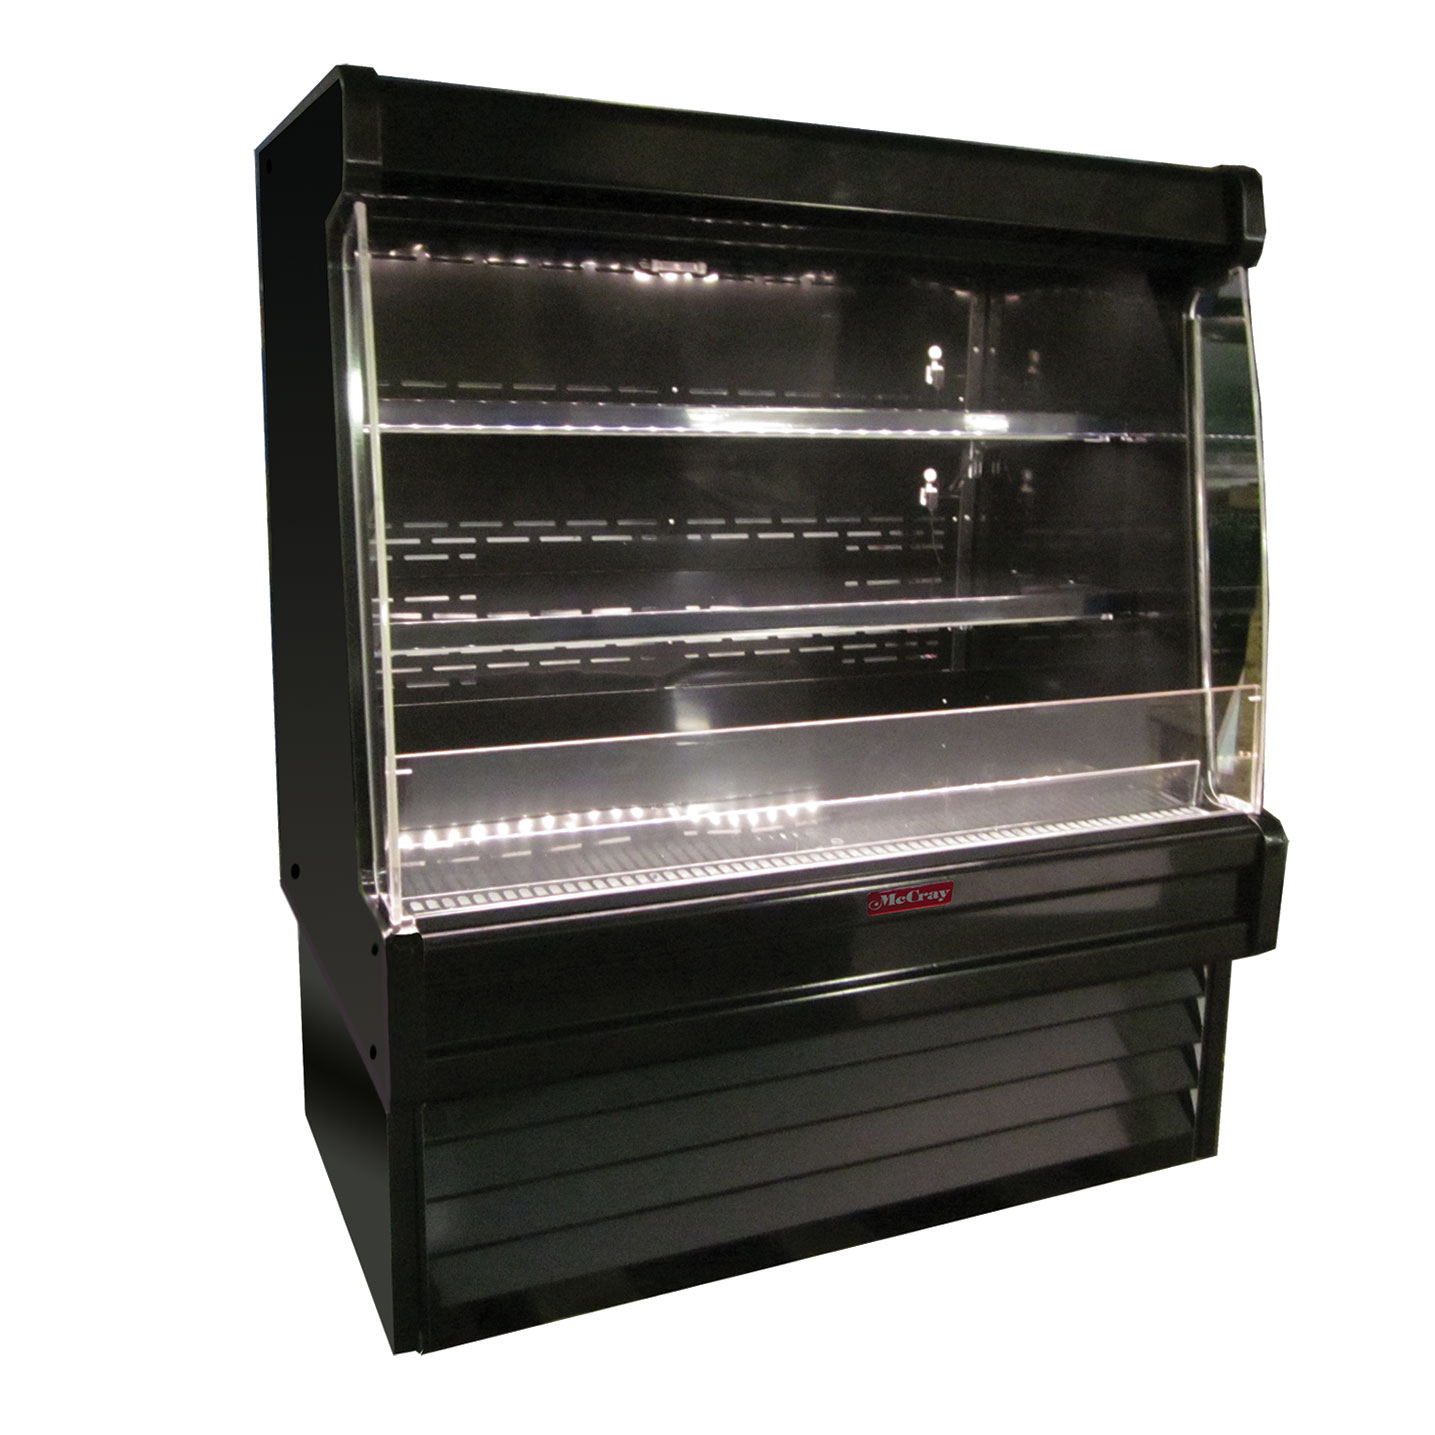 Howard-McCray R-OP35E-5L-LED display case, produce